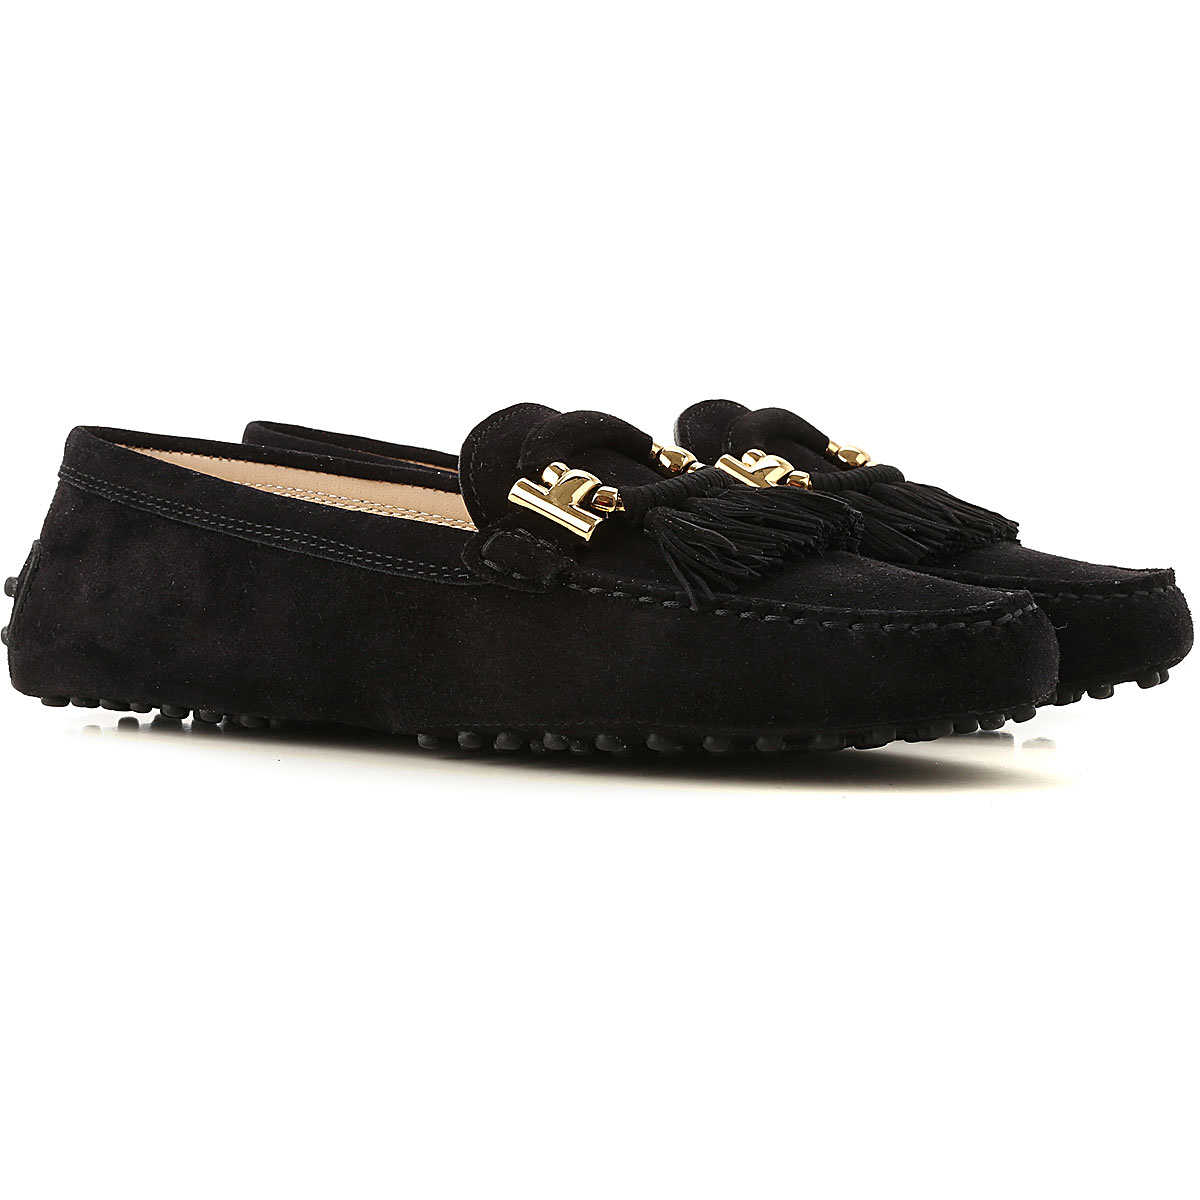 Tods Driver Loafer Shoes for Women On Sale Black UK - GOOFASH